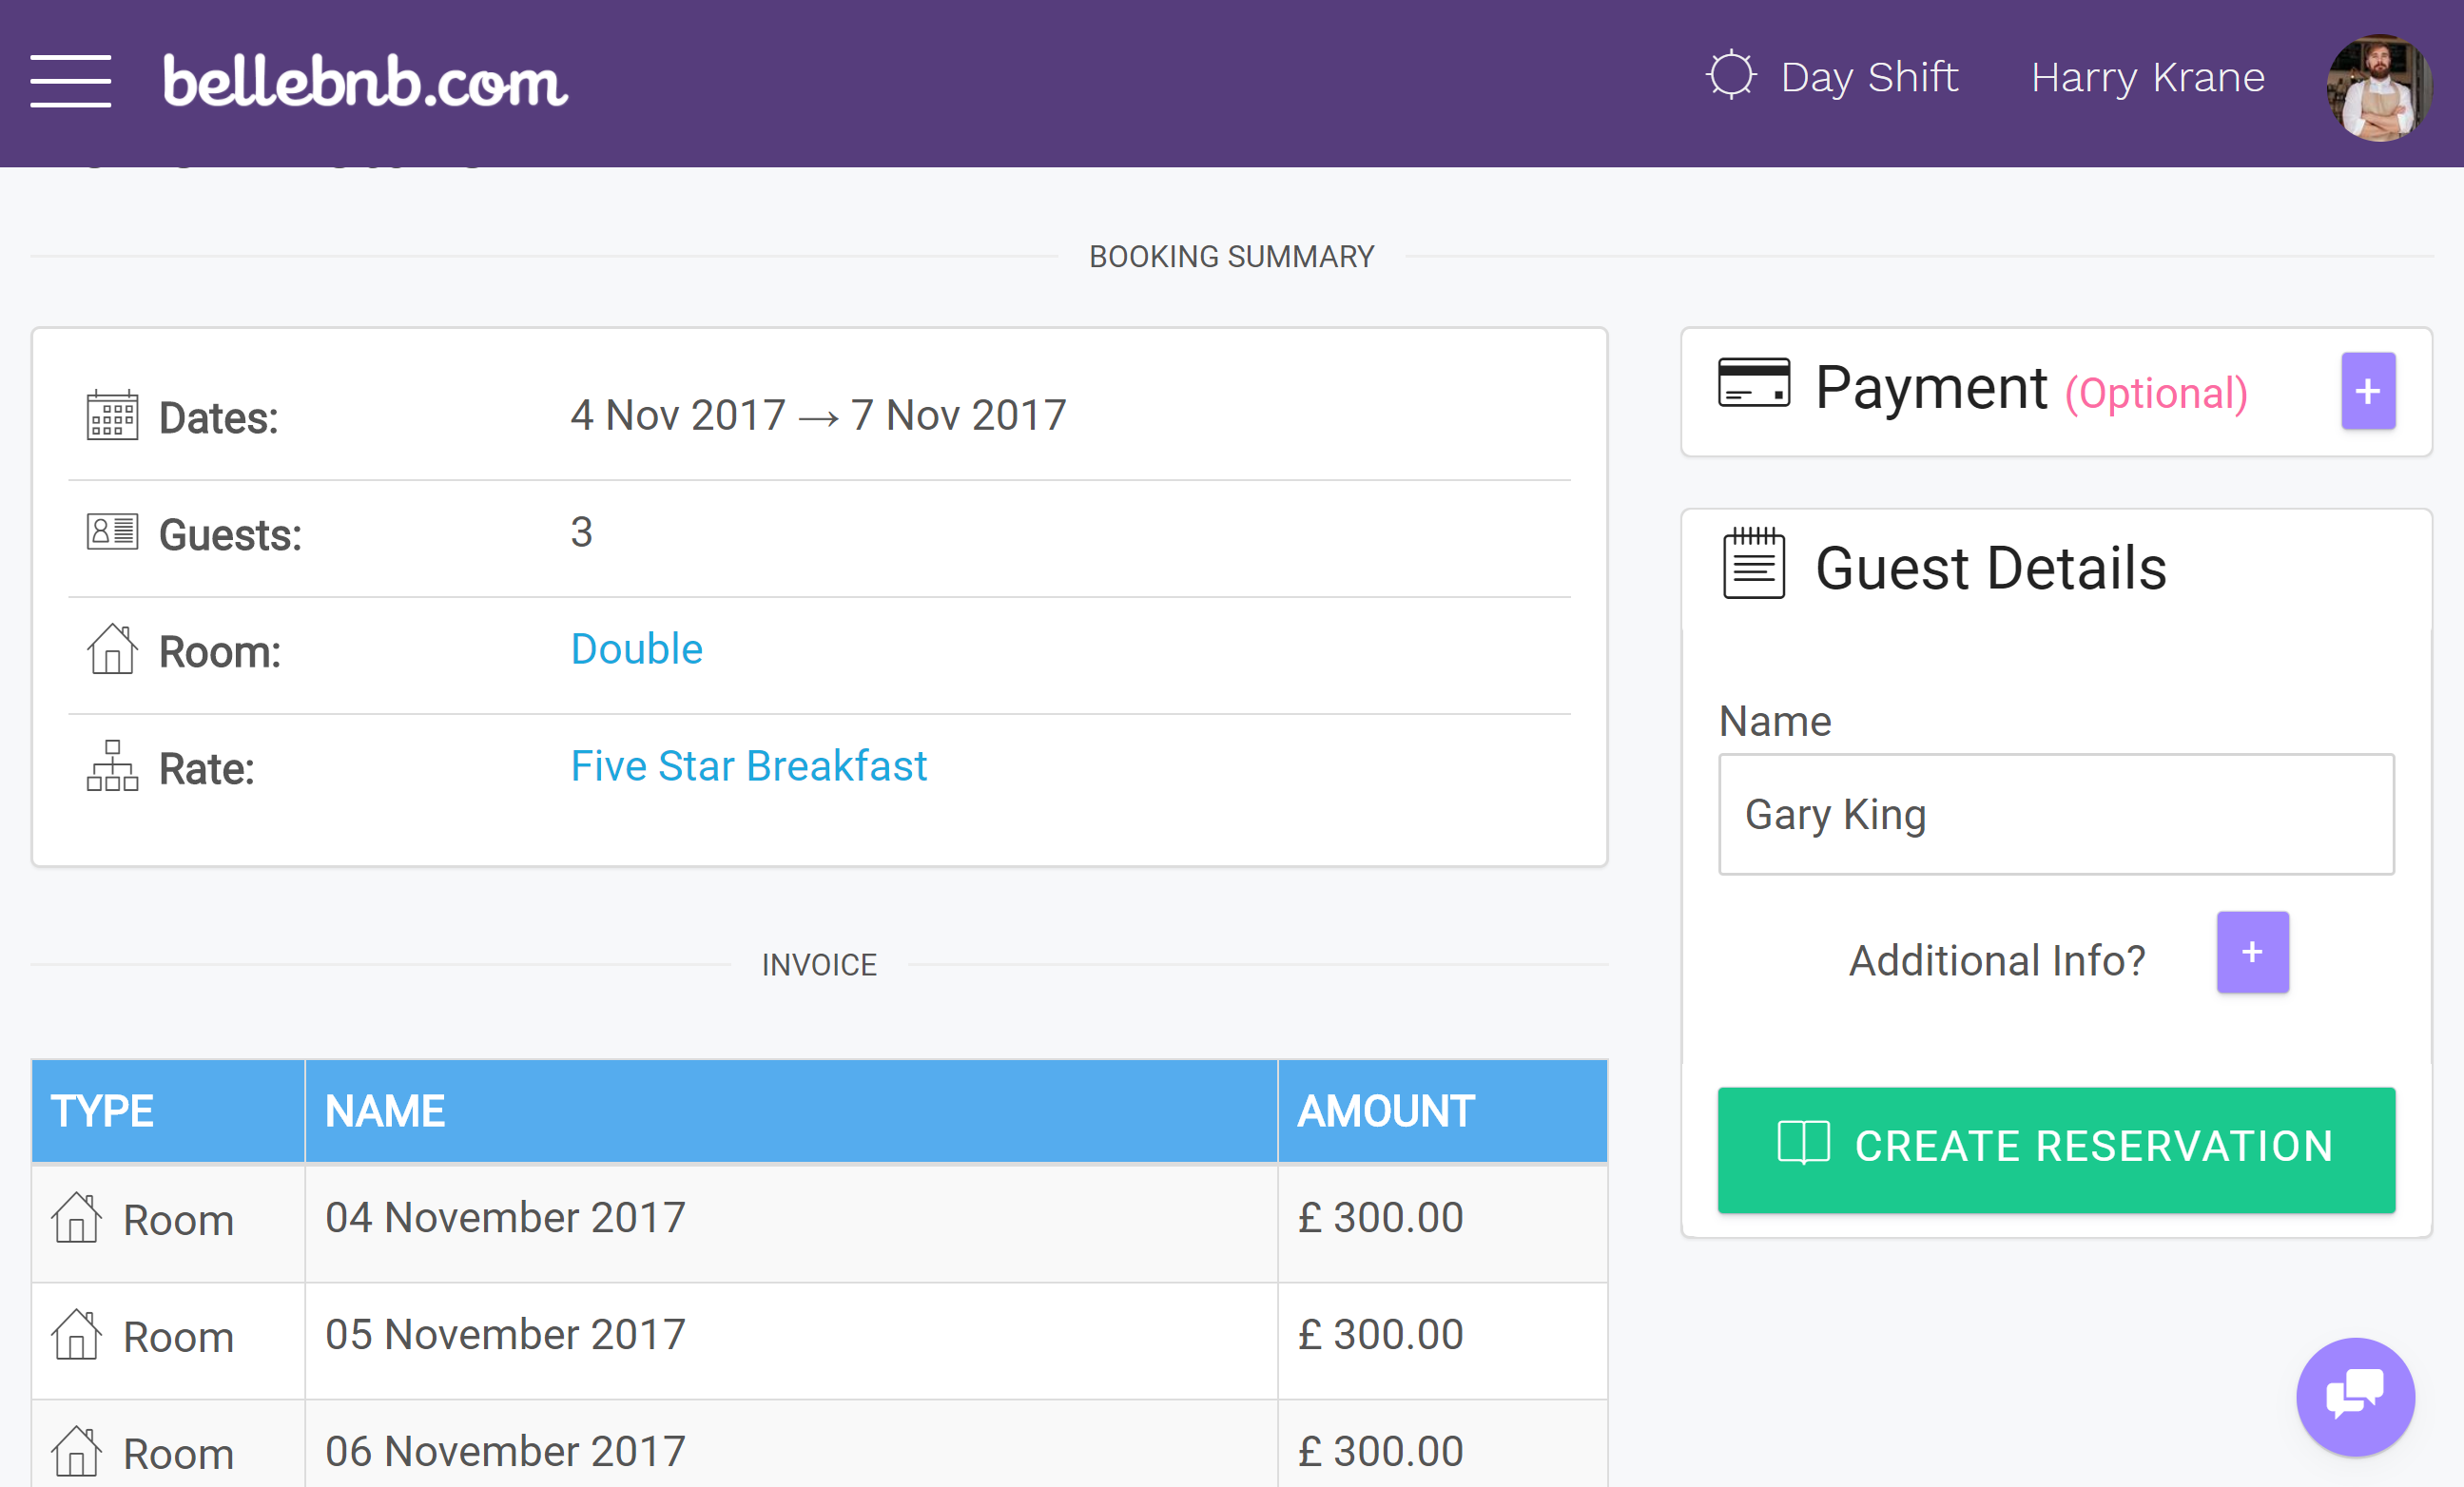 Hotel Front Desk & Reservation Drag-n-Drop Calendar to make it even easier to manage your hotel's daily activity. You can now drag and resize to create and reschedule your hotel bookings and reservations.